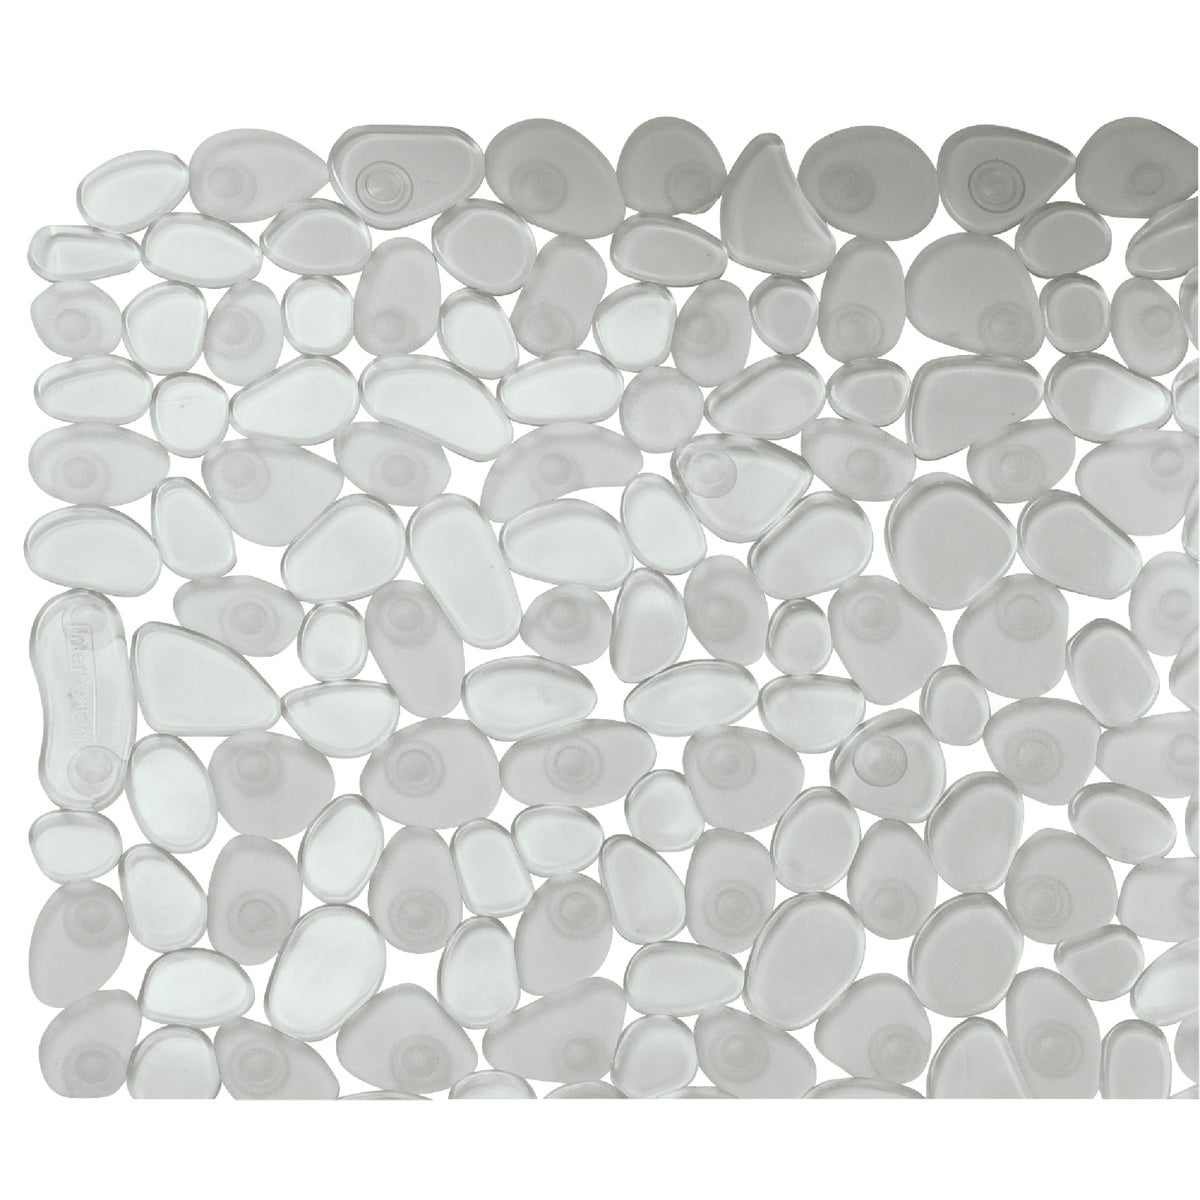 CLEAR SQUARE SHOWER MAT - 80210 by Interdesign Inc